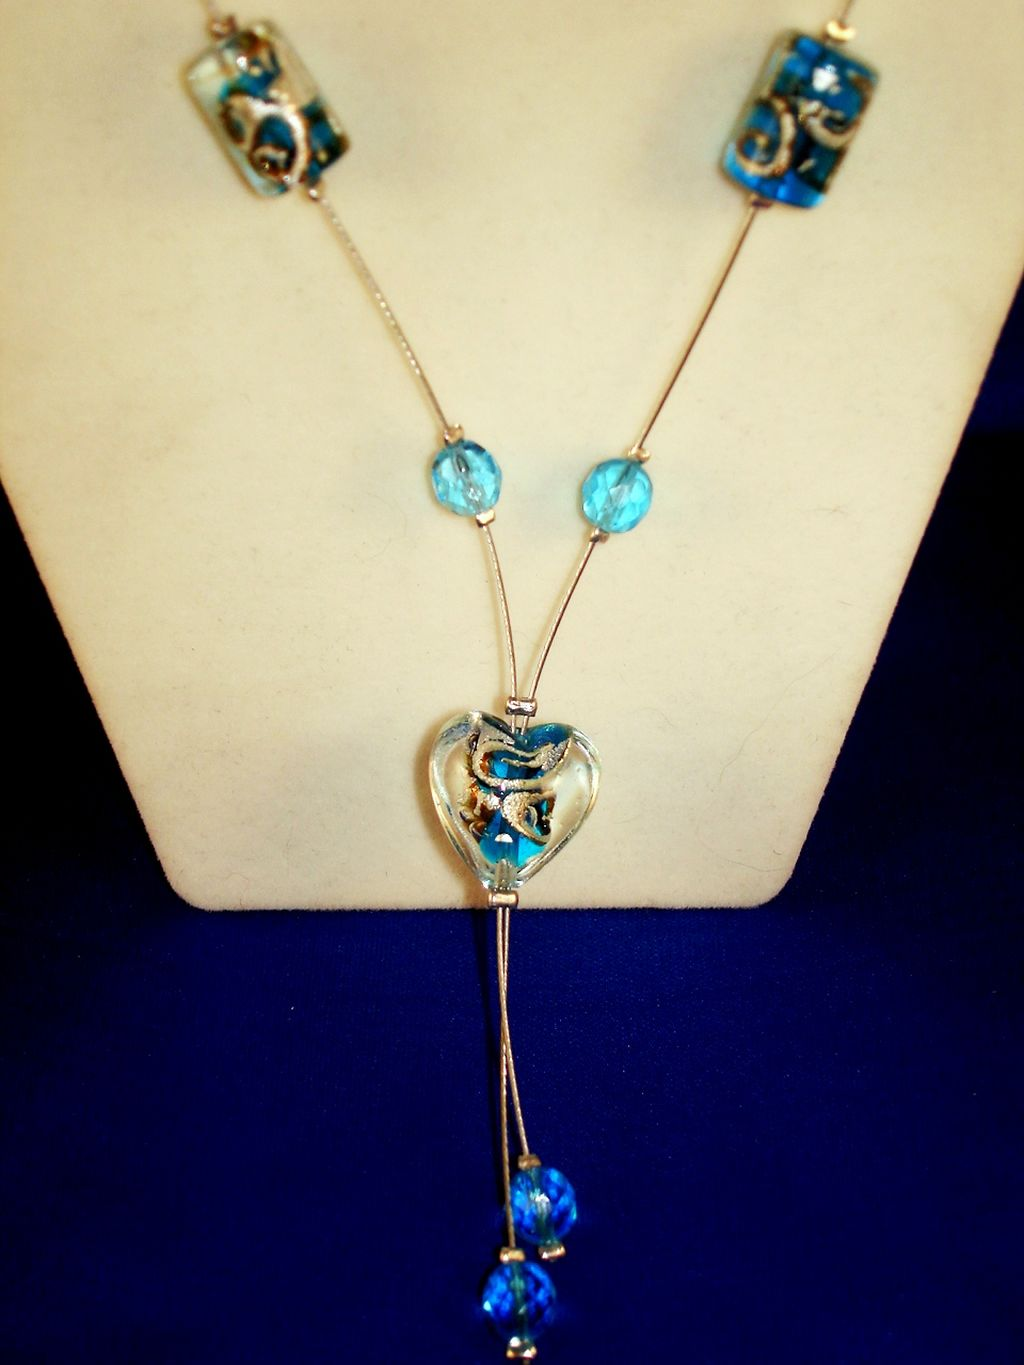 Blue Heart Stained Glass Necklace, European Fashion Jewelry